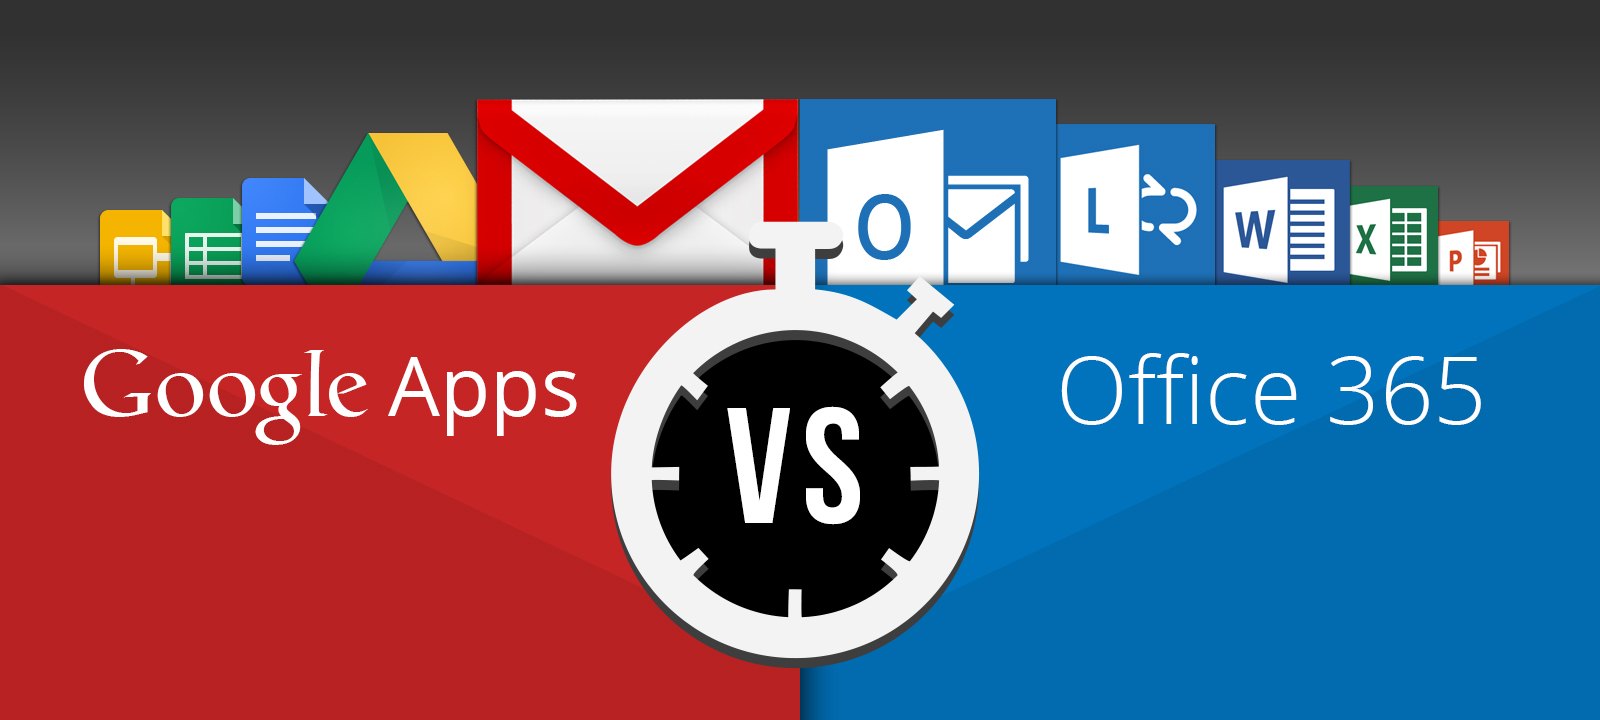 googlevsoffice365